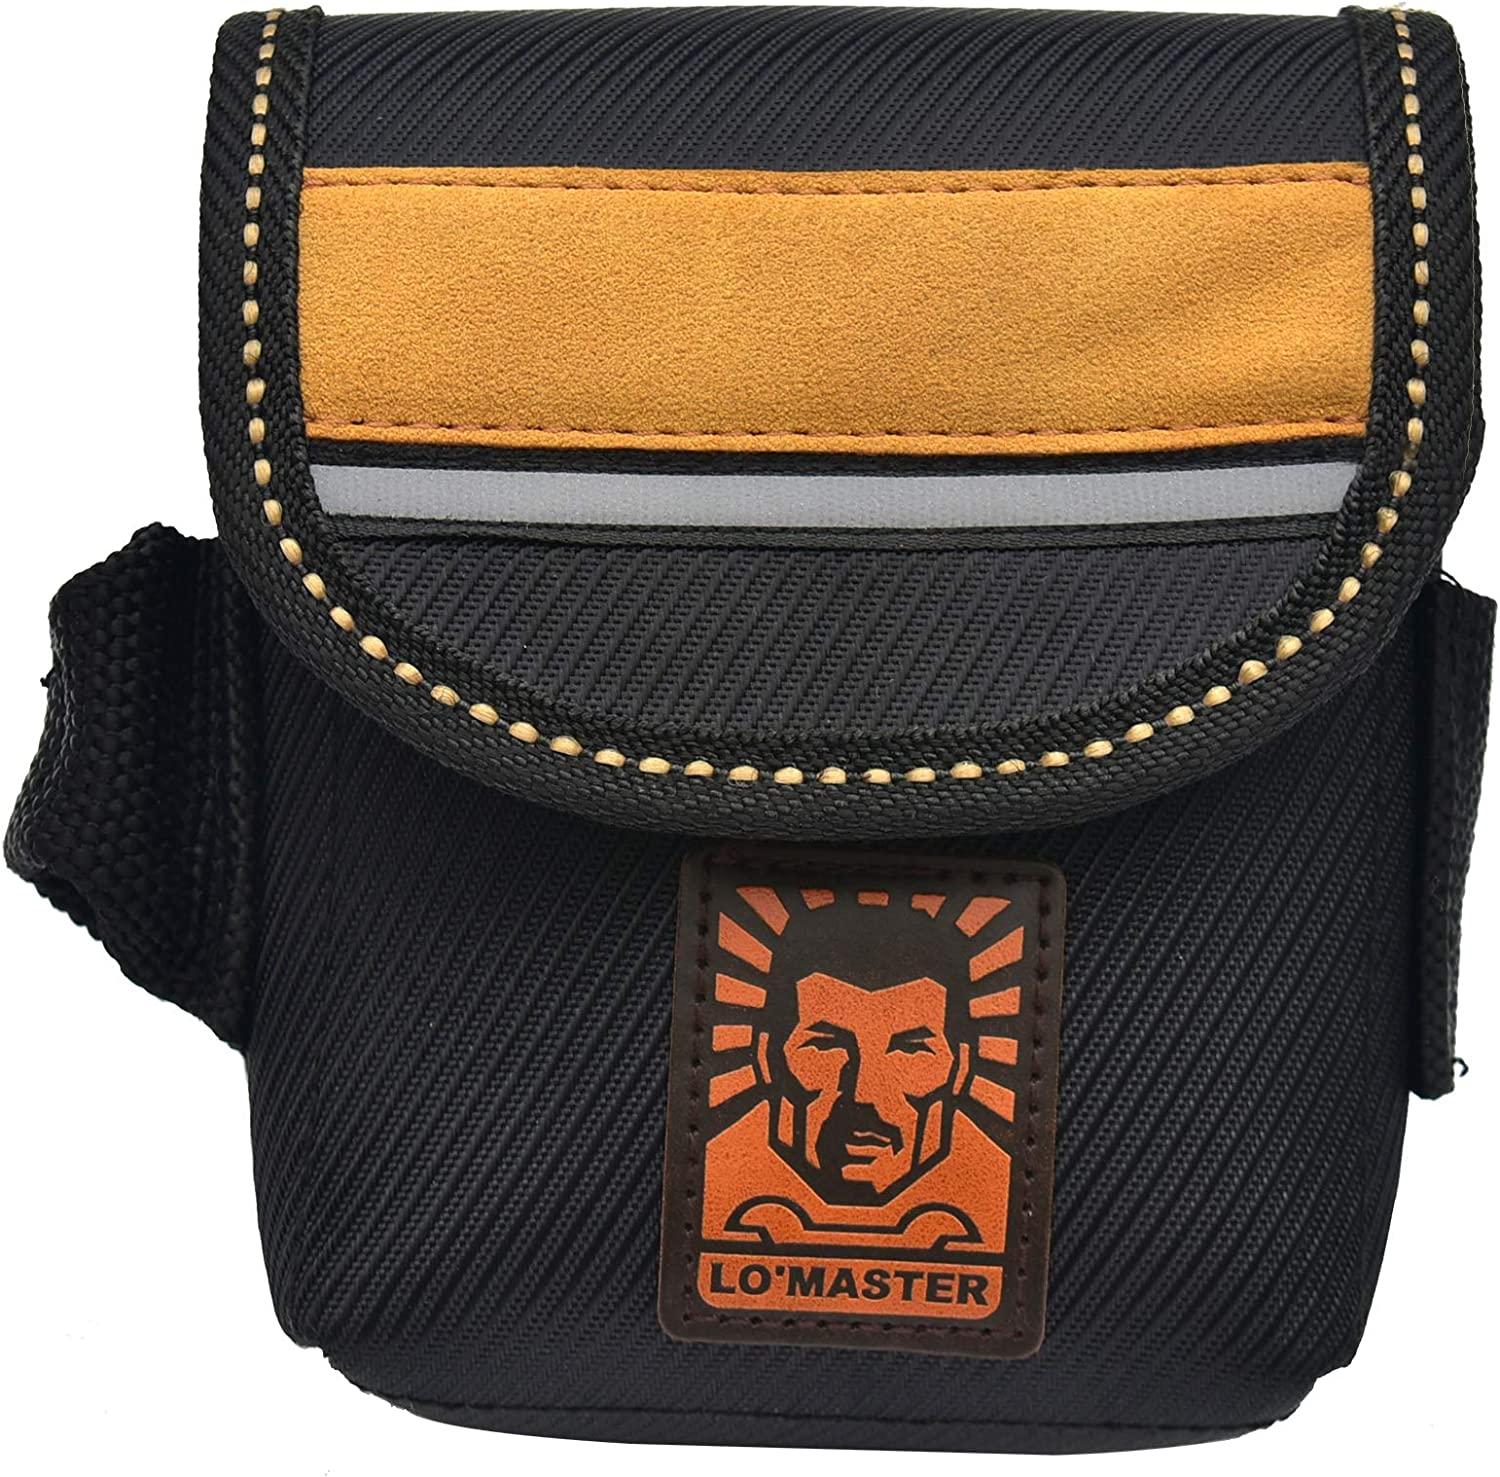 Lo'MASTER Multi-Purpose Tool Nail Bag is Suitable for Hooking on